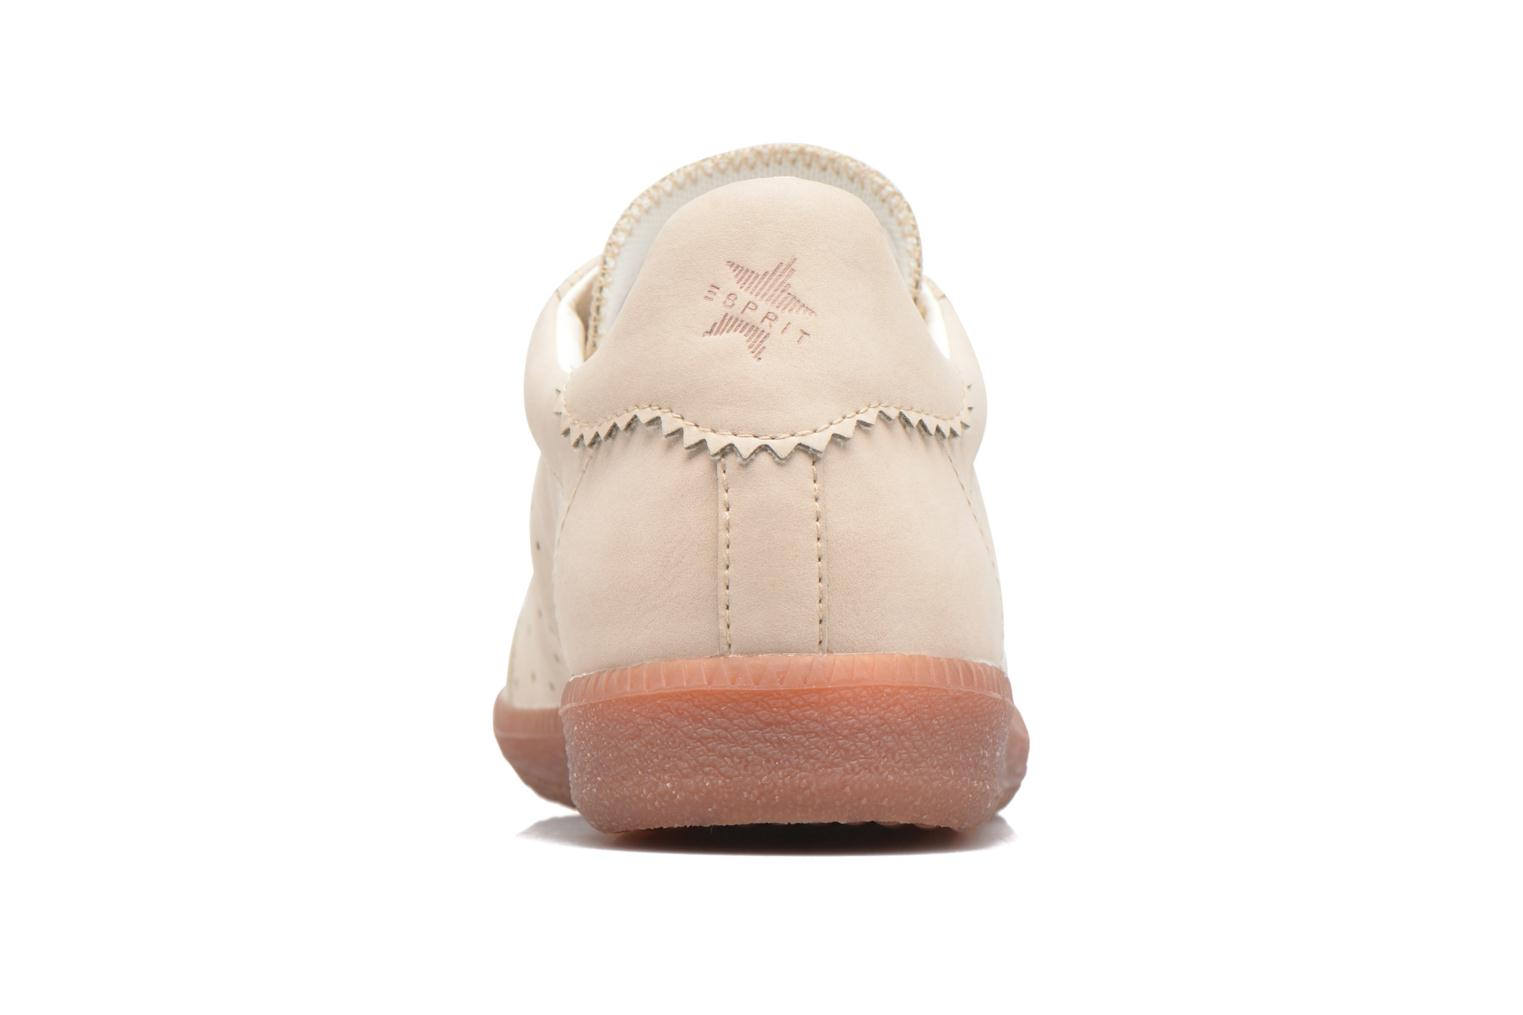 Trainee Lace Up 280 Skin Beige